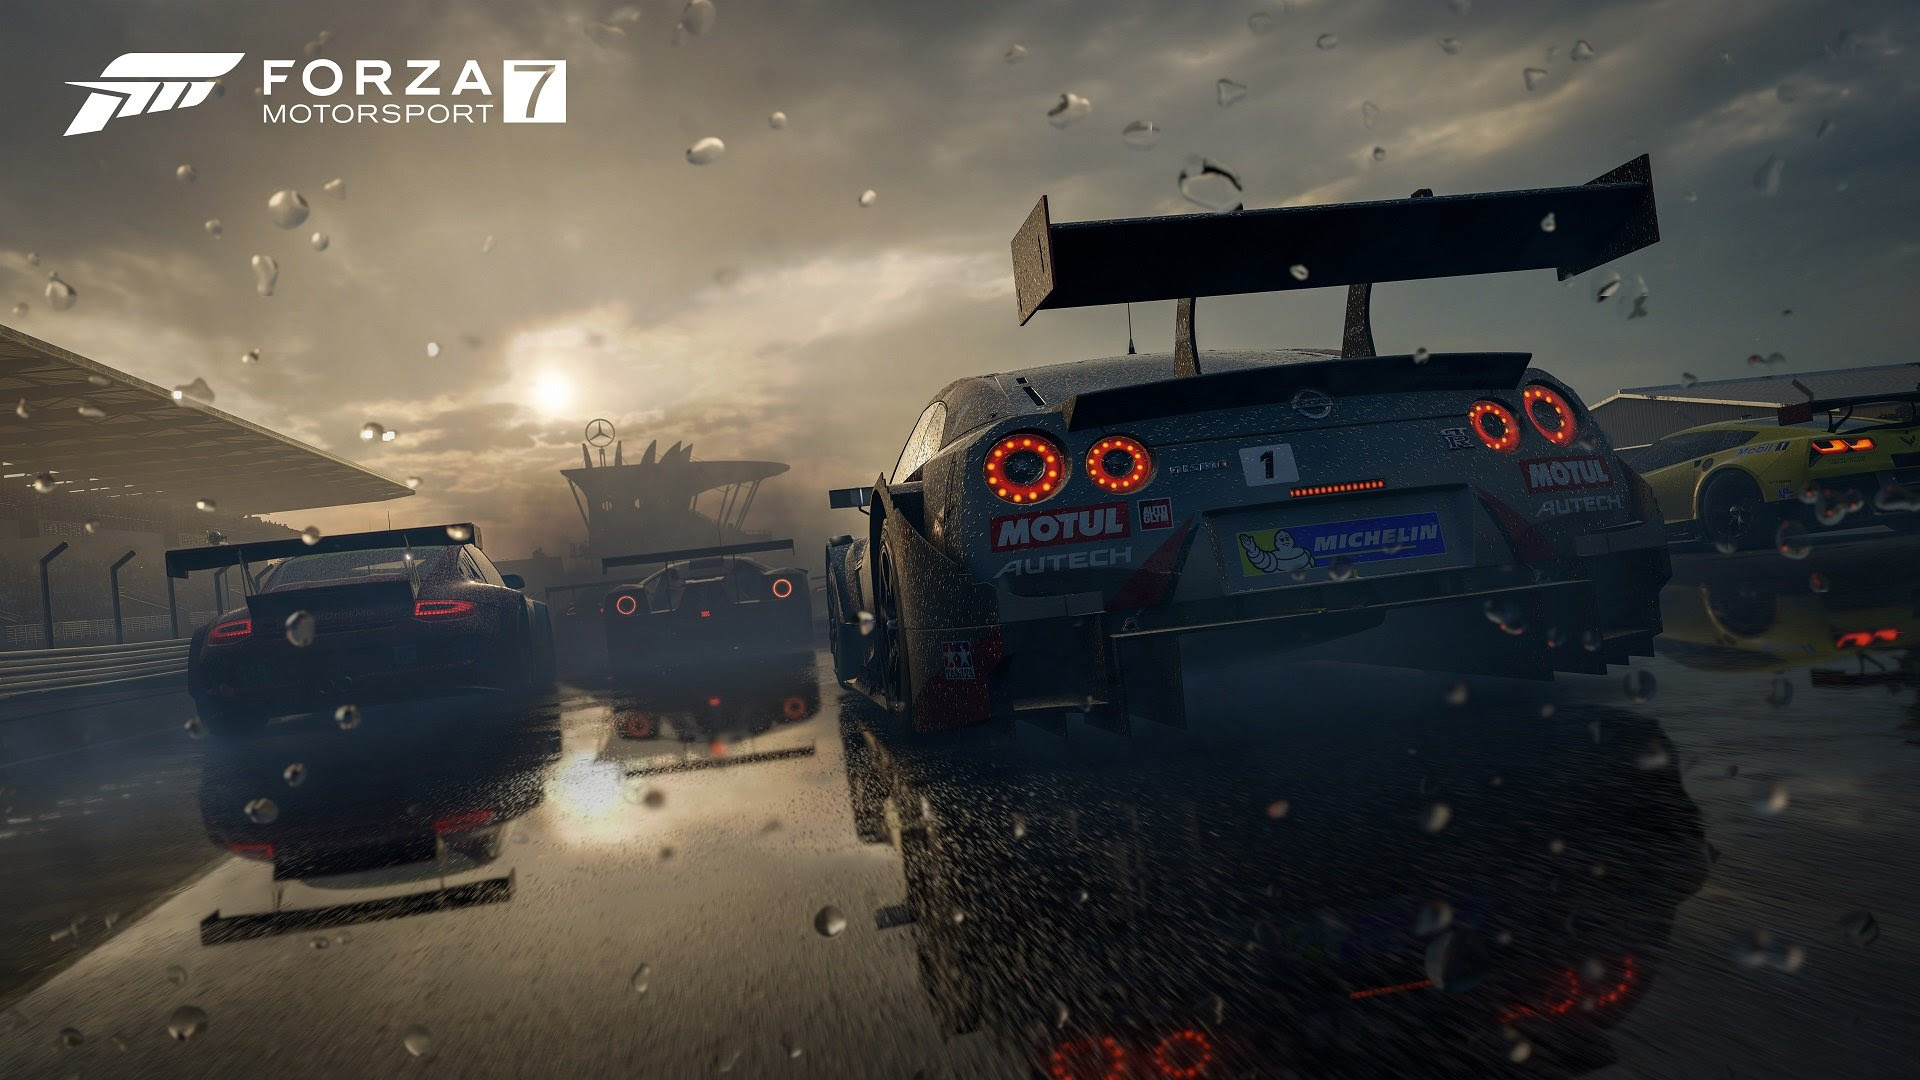 Forza Motorsport 7 will support every fan-requested racing wheel on the market screenshot